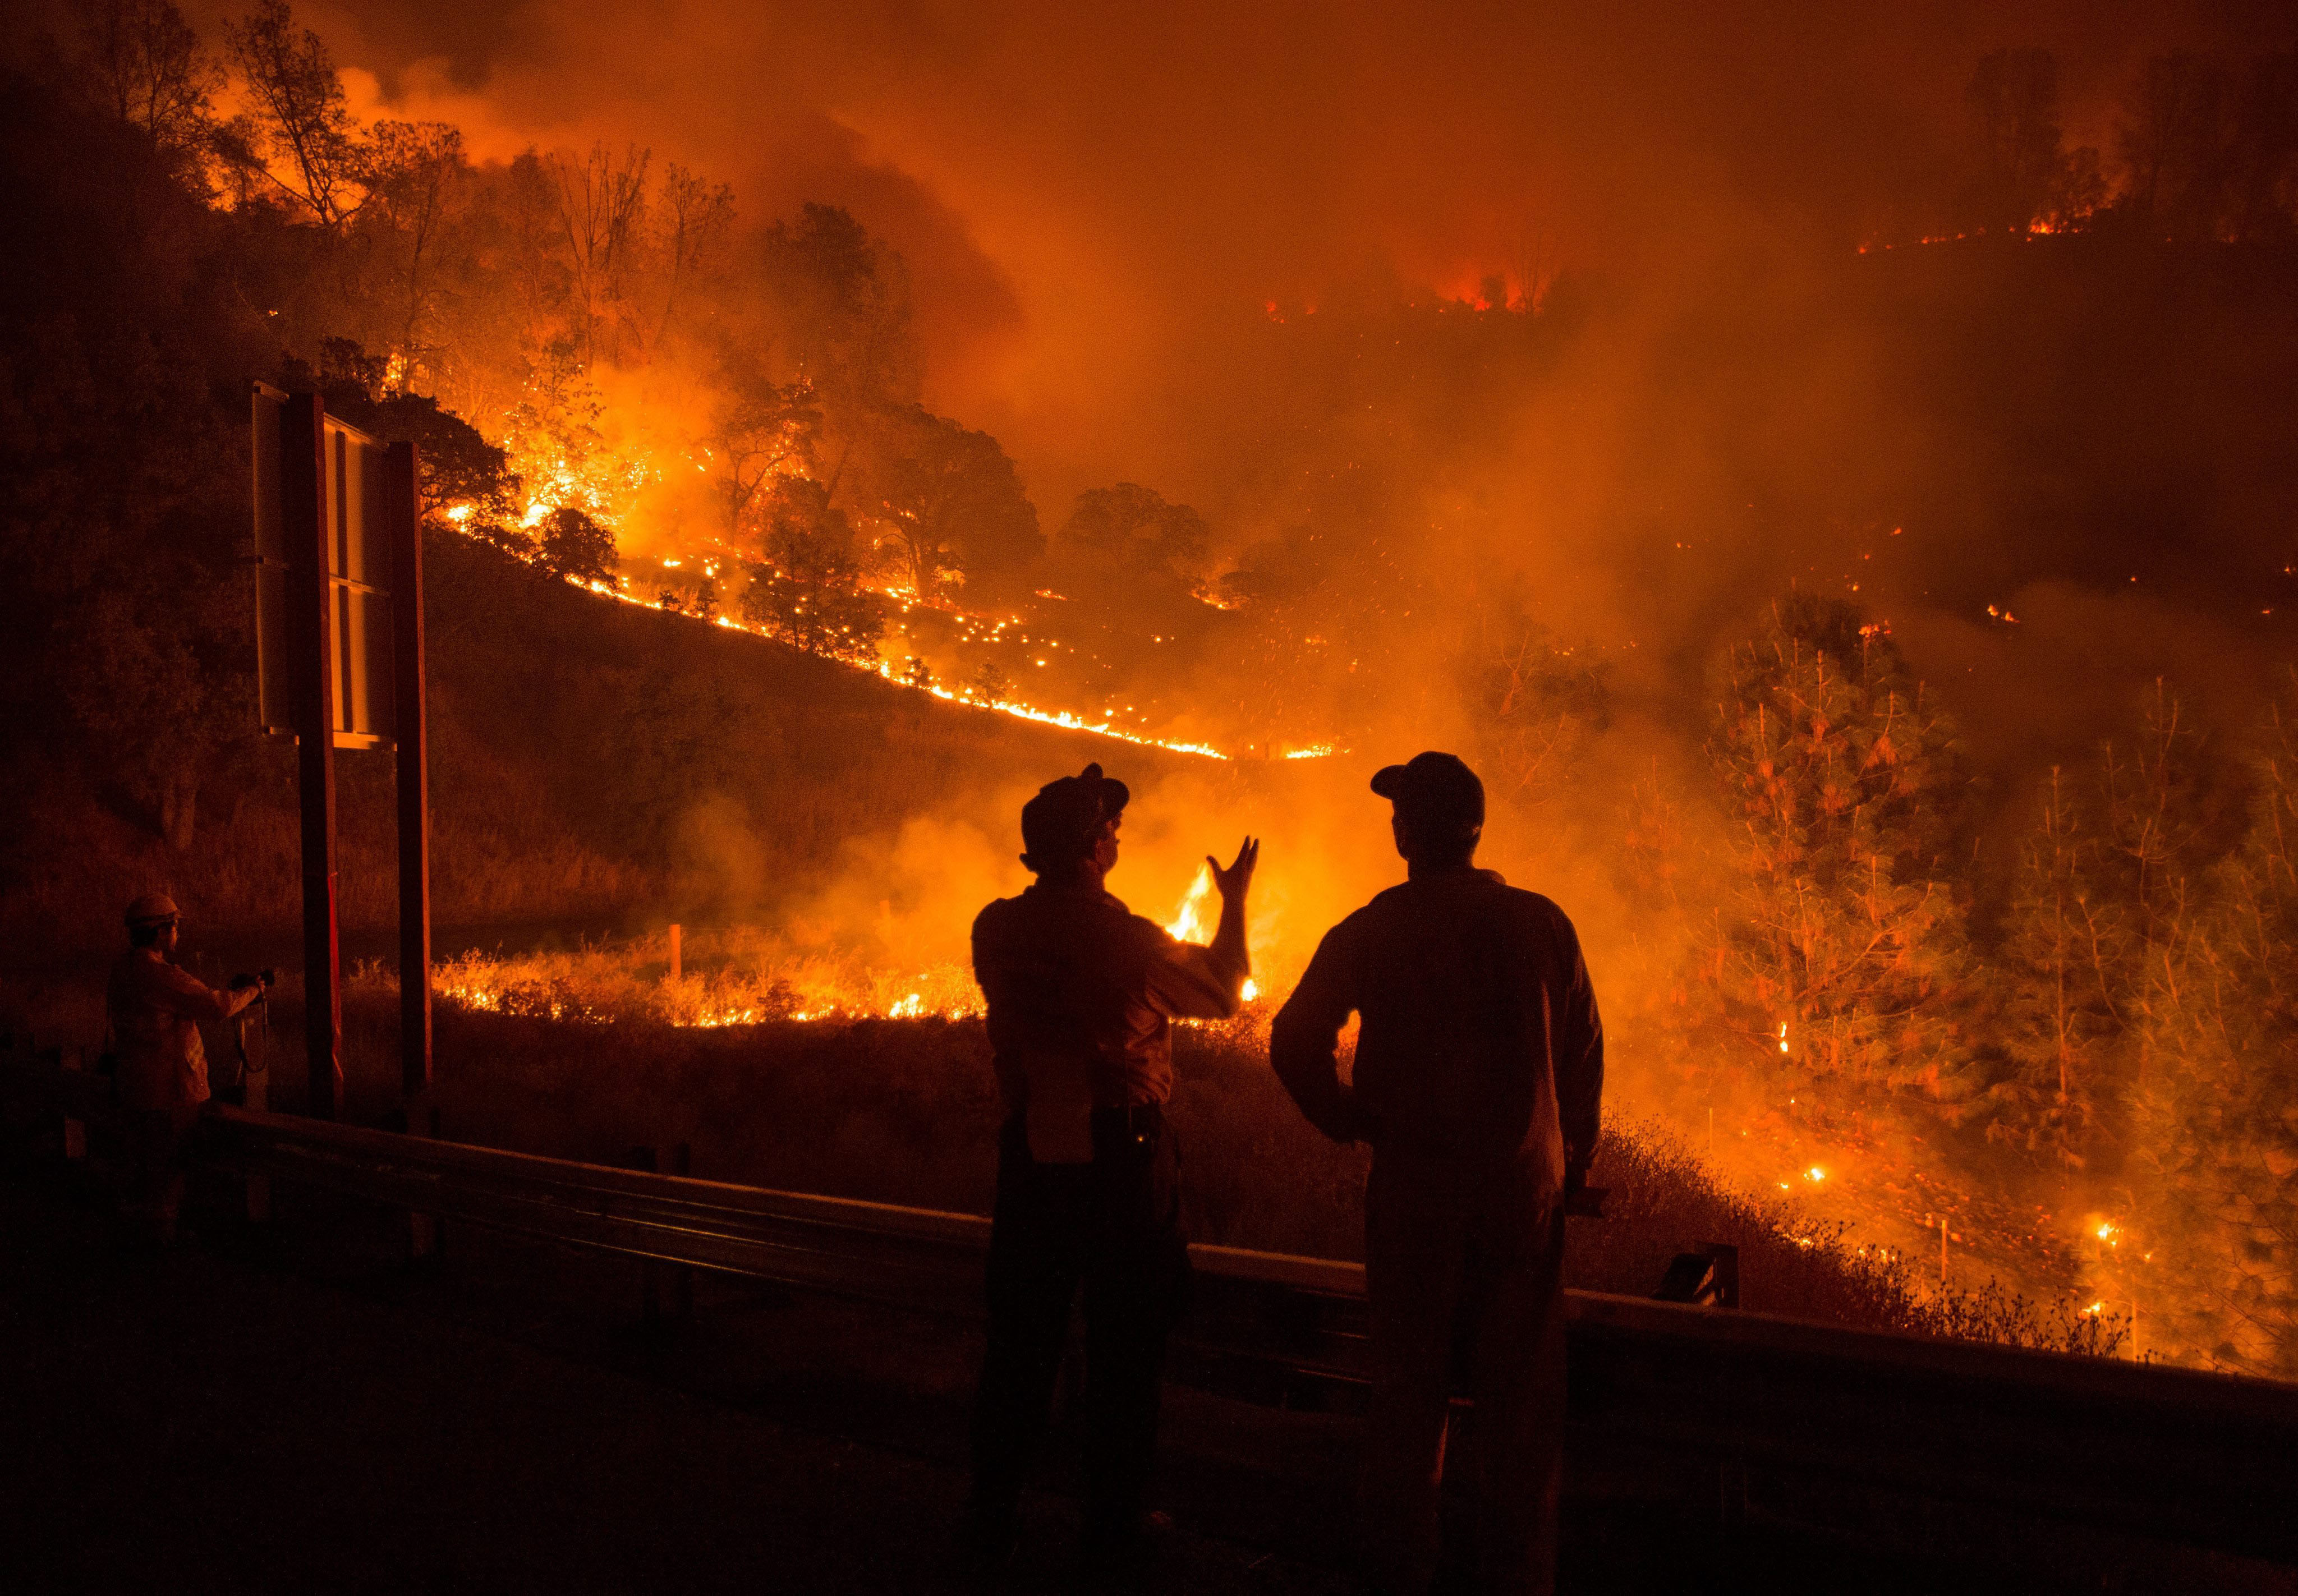 Firefighters Richard Dykhouse, left, and Dan McCabe confer as the Rocky fire burns near Clearlake, Calif. on Aug. 2, 2015.